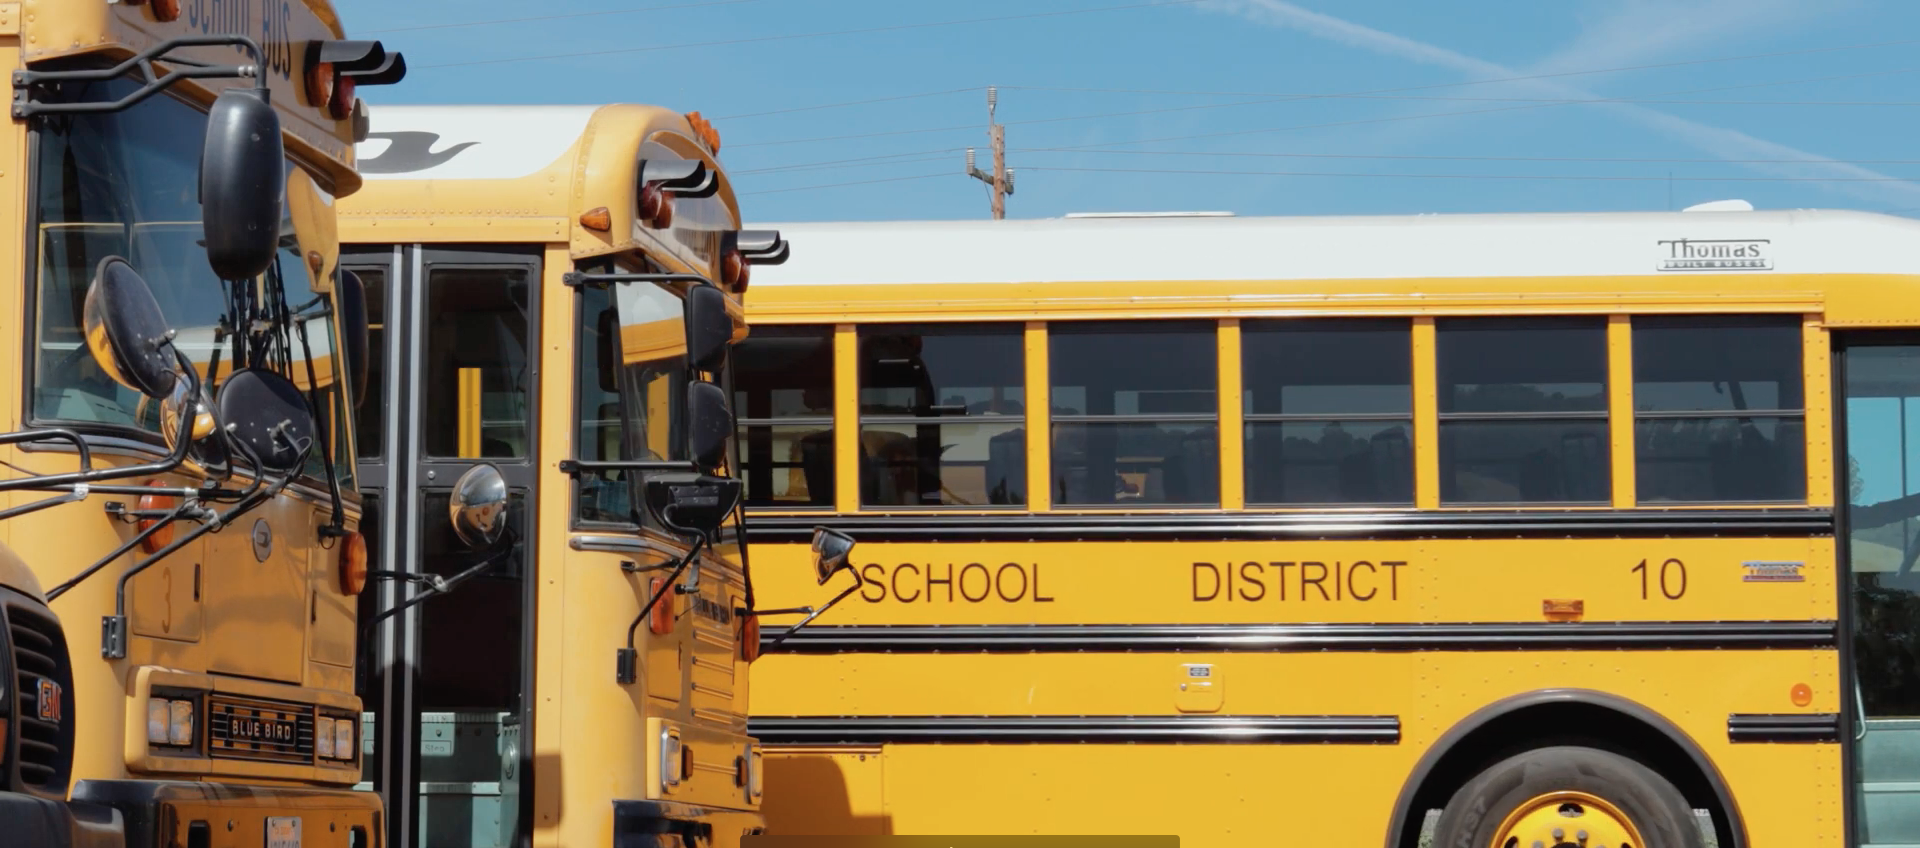 ENGIE North America and Icomera Fast-track Installation of Free Wi-Fi for California School Districts